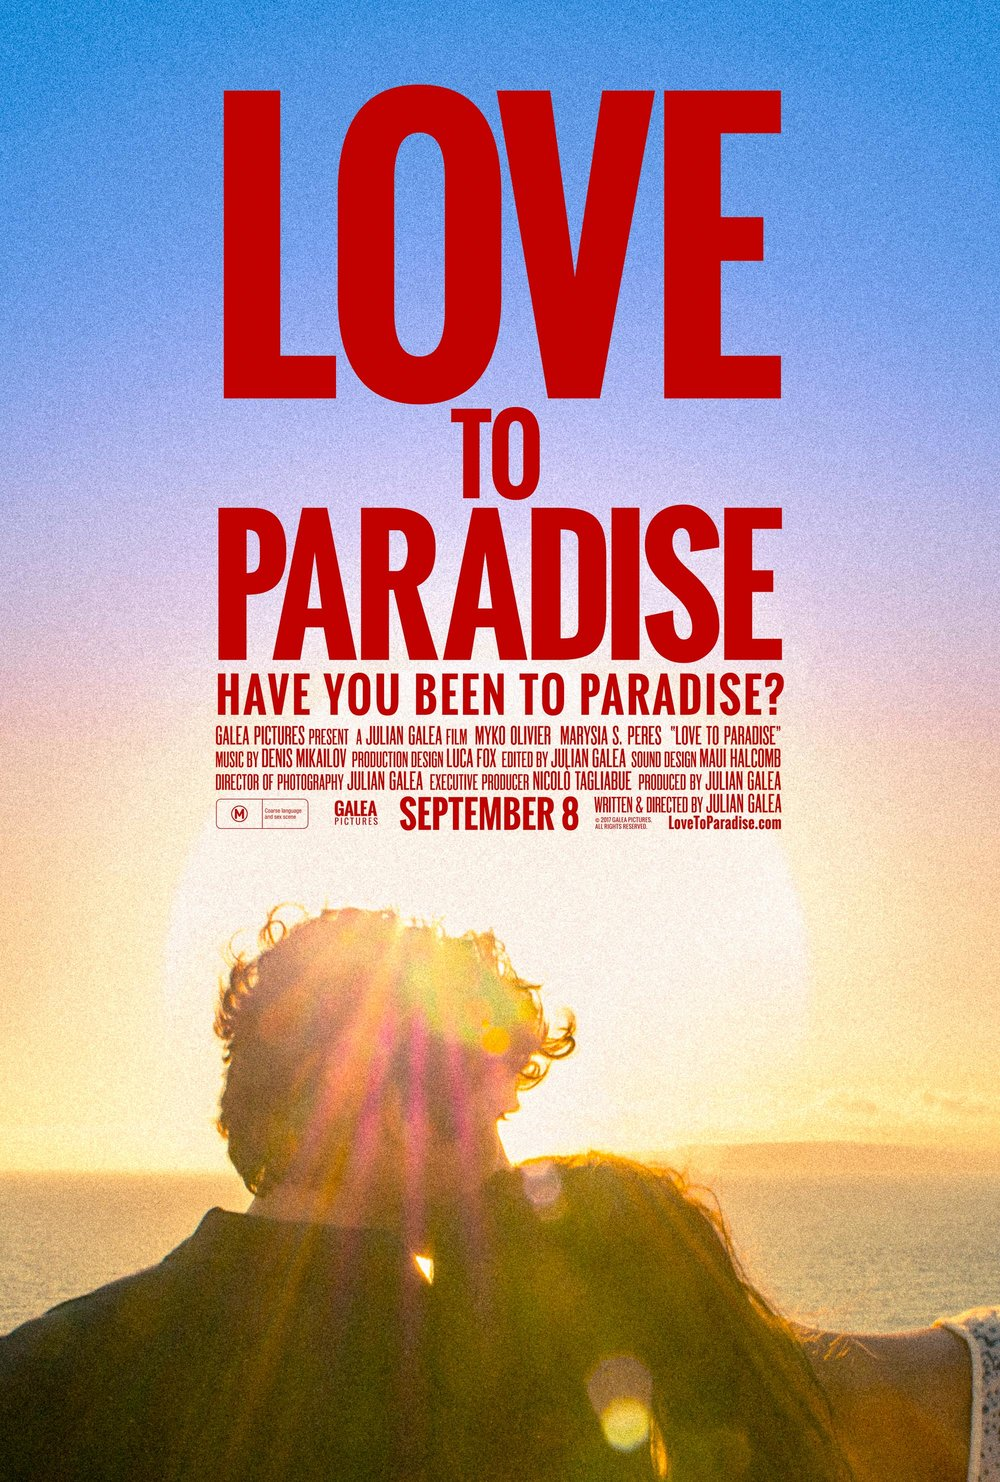 Love_to_Paradise_Cinema_Potser_27x40_Malta-1.jpg